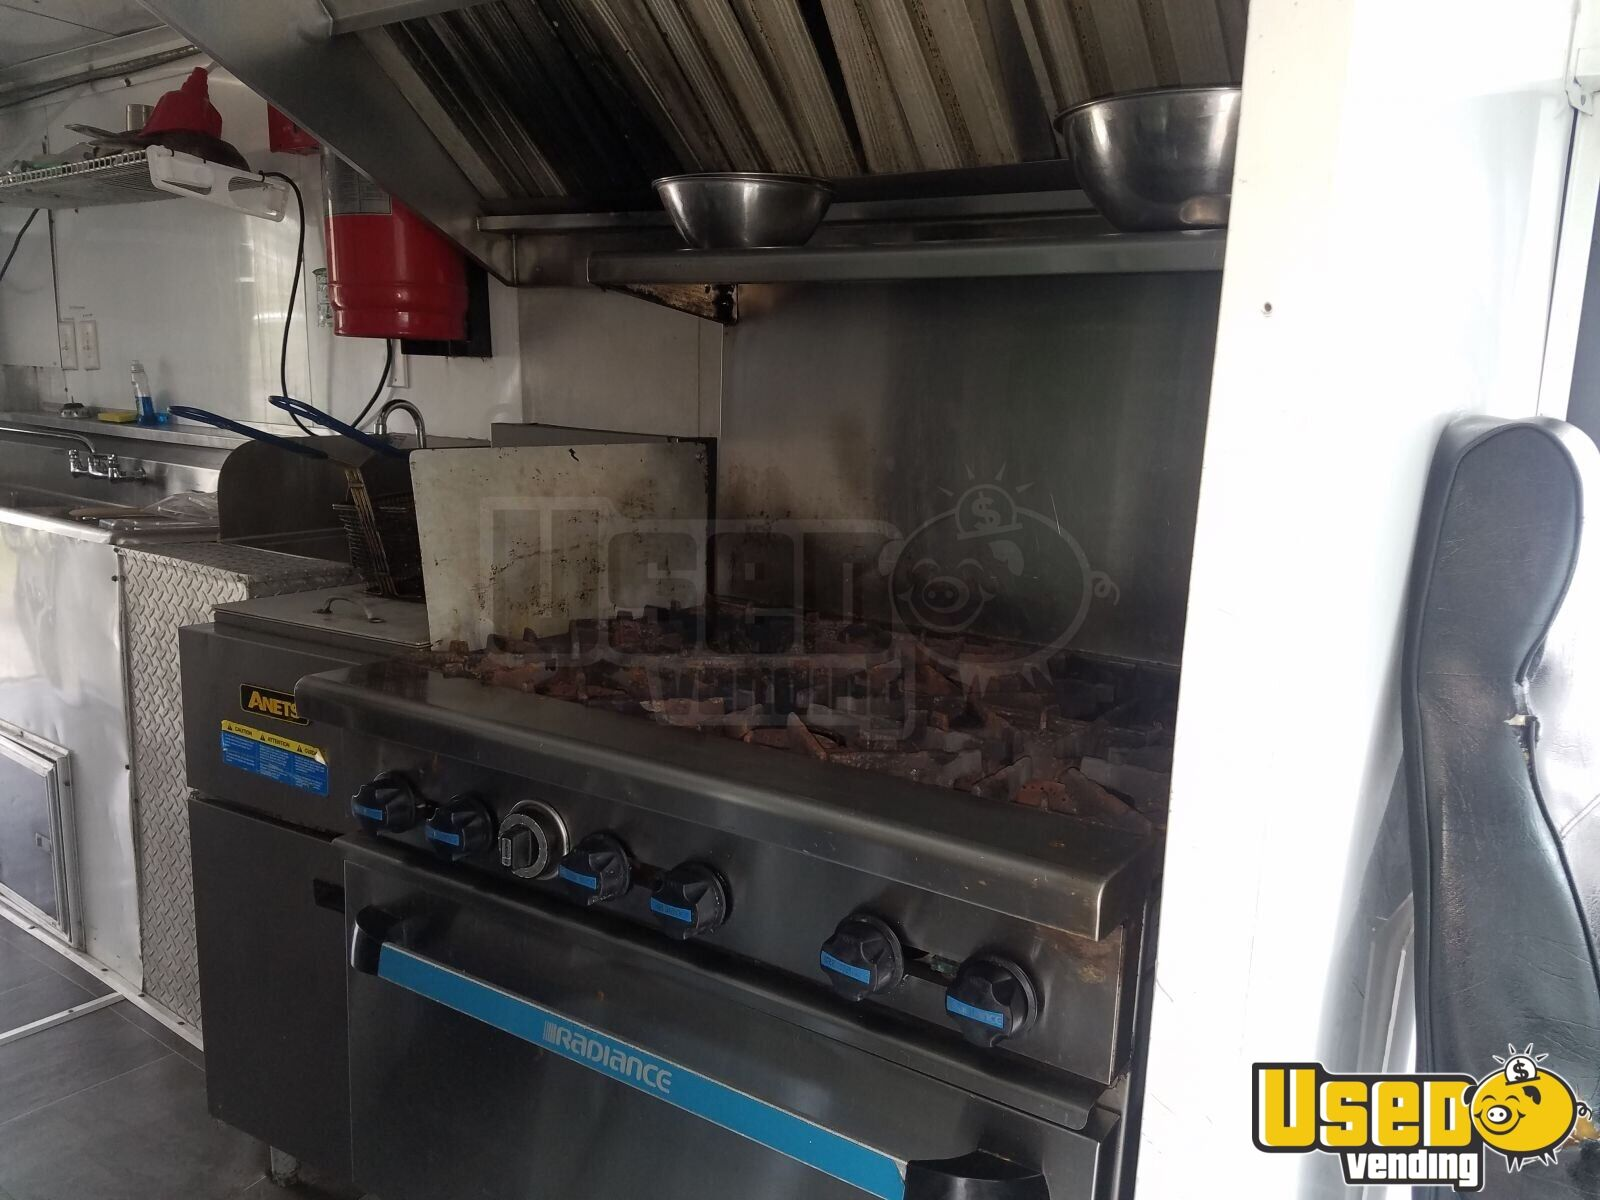 1989 Chevrolet P30 Food Truck Stainless Steel Wall Covers Louisiana Diesel Engine for Sale - 5